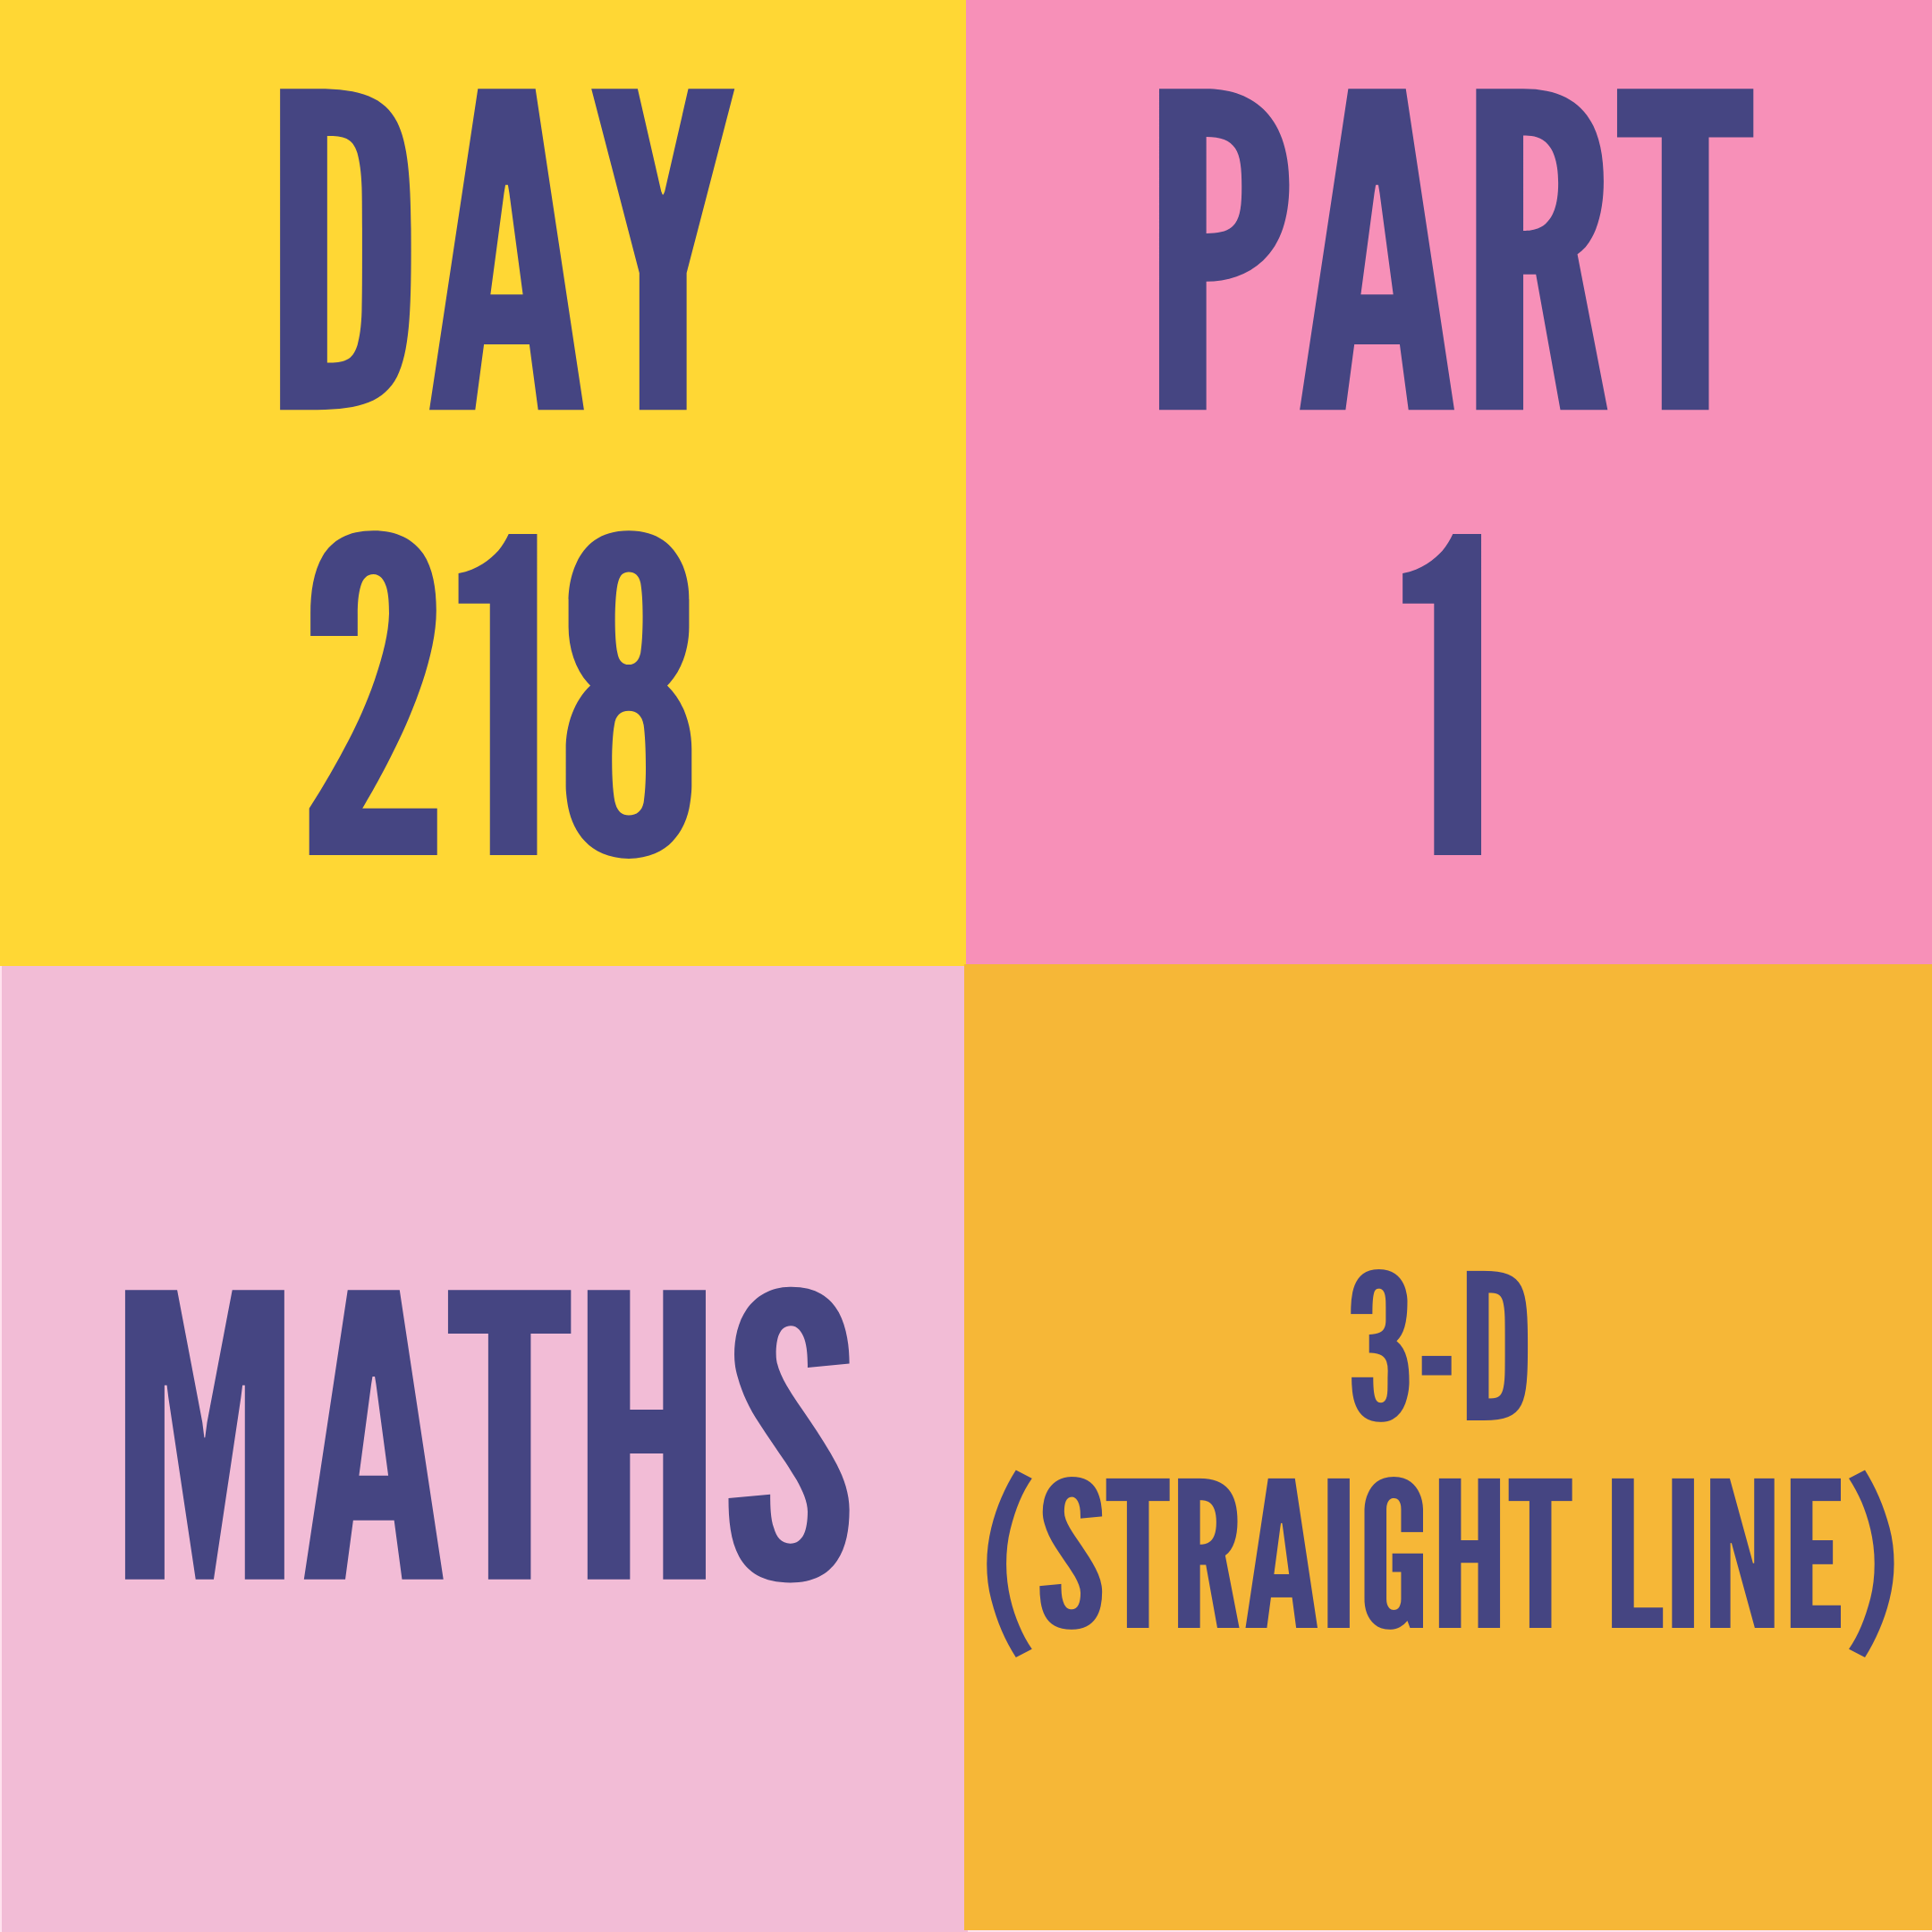 DAY-218 PART-1 3-D (STRAIGHT LINE)